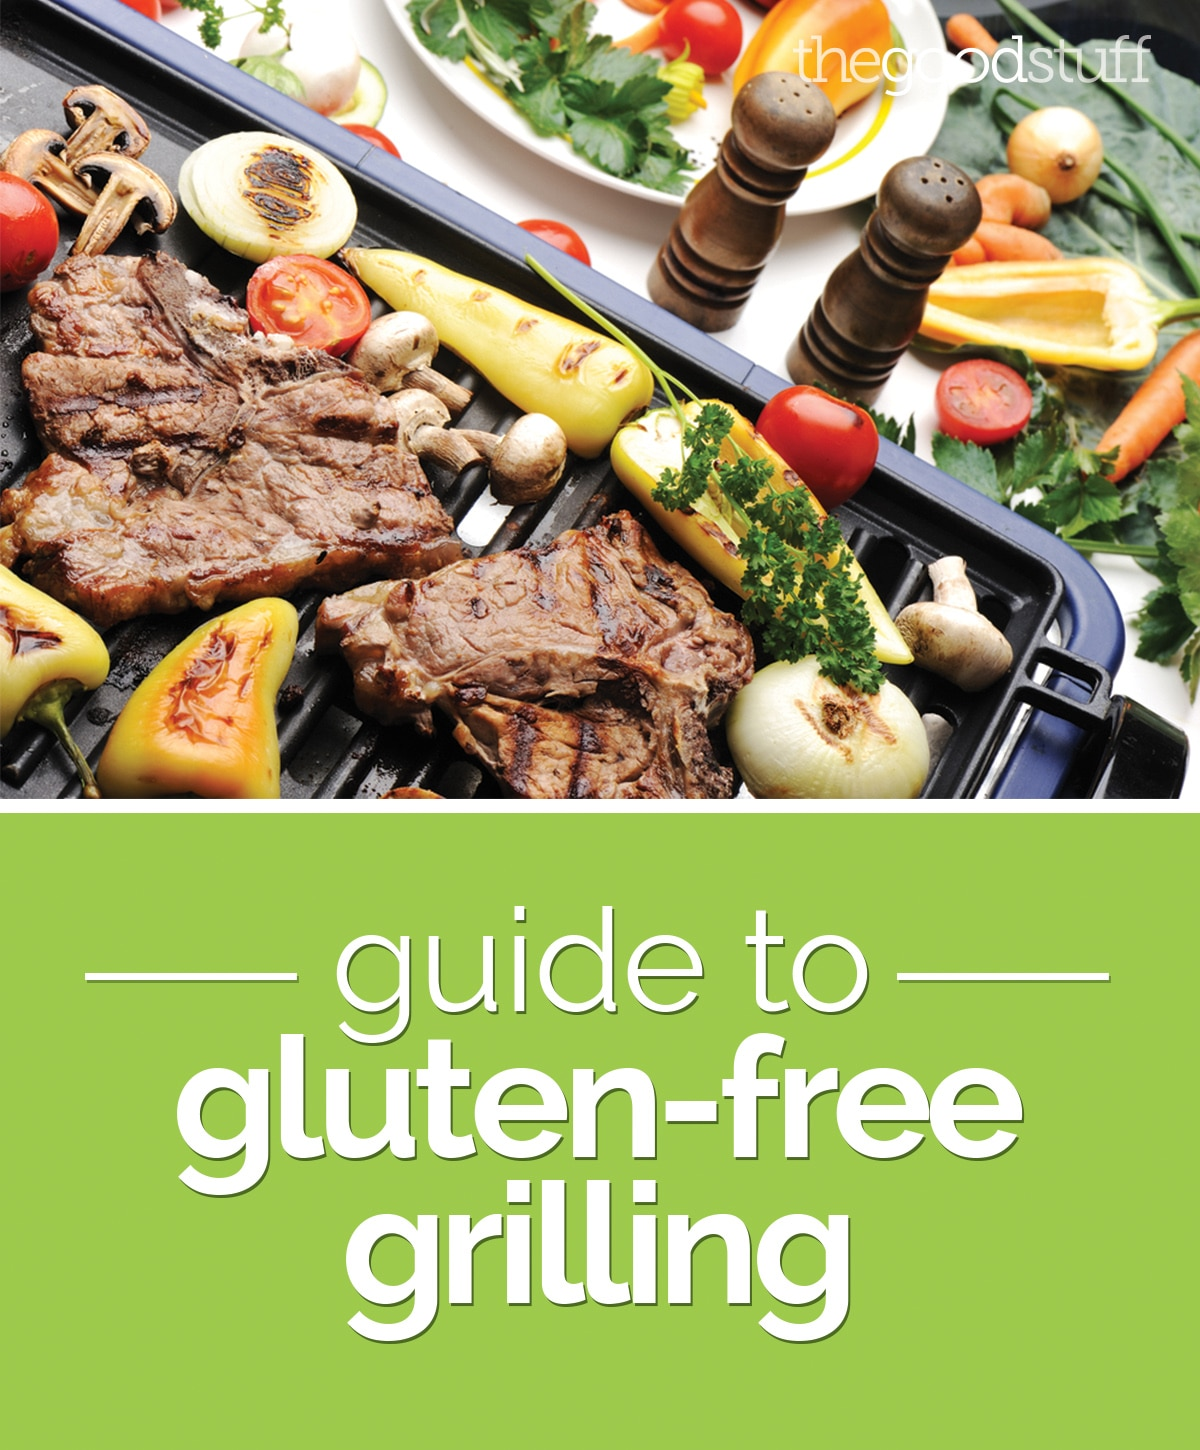 Guide to Gluten-Free Grilling | thegoodstuff